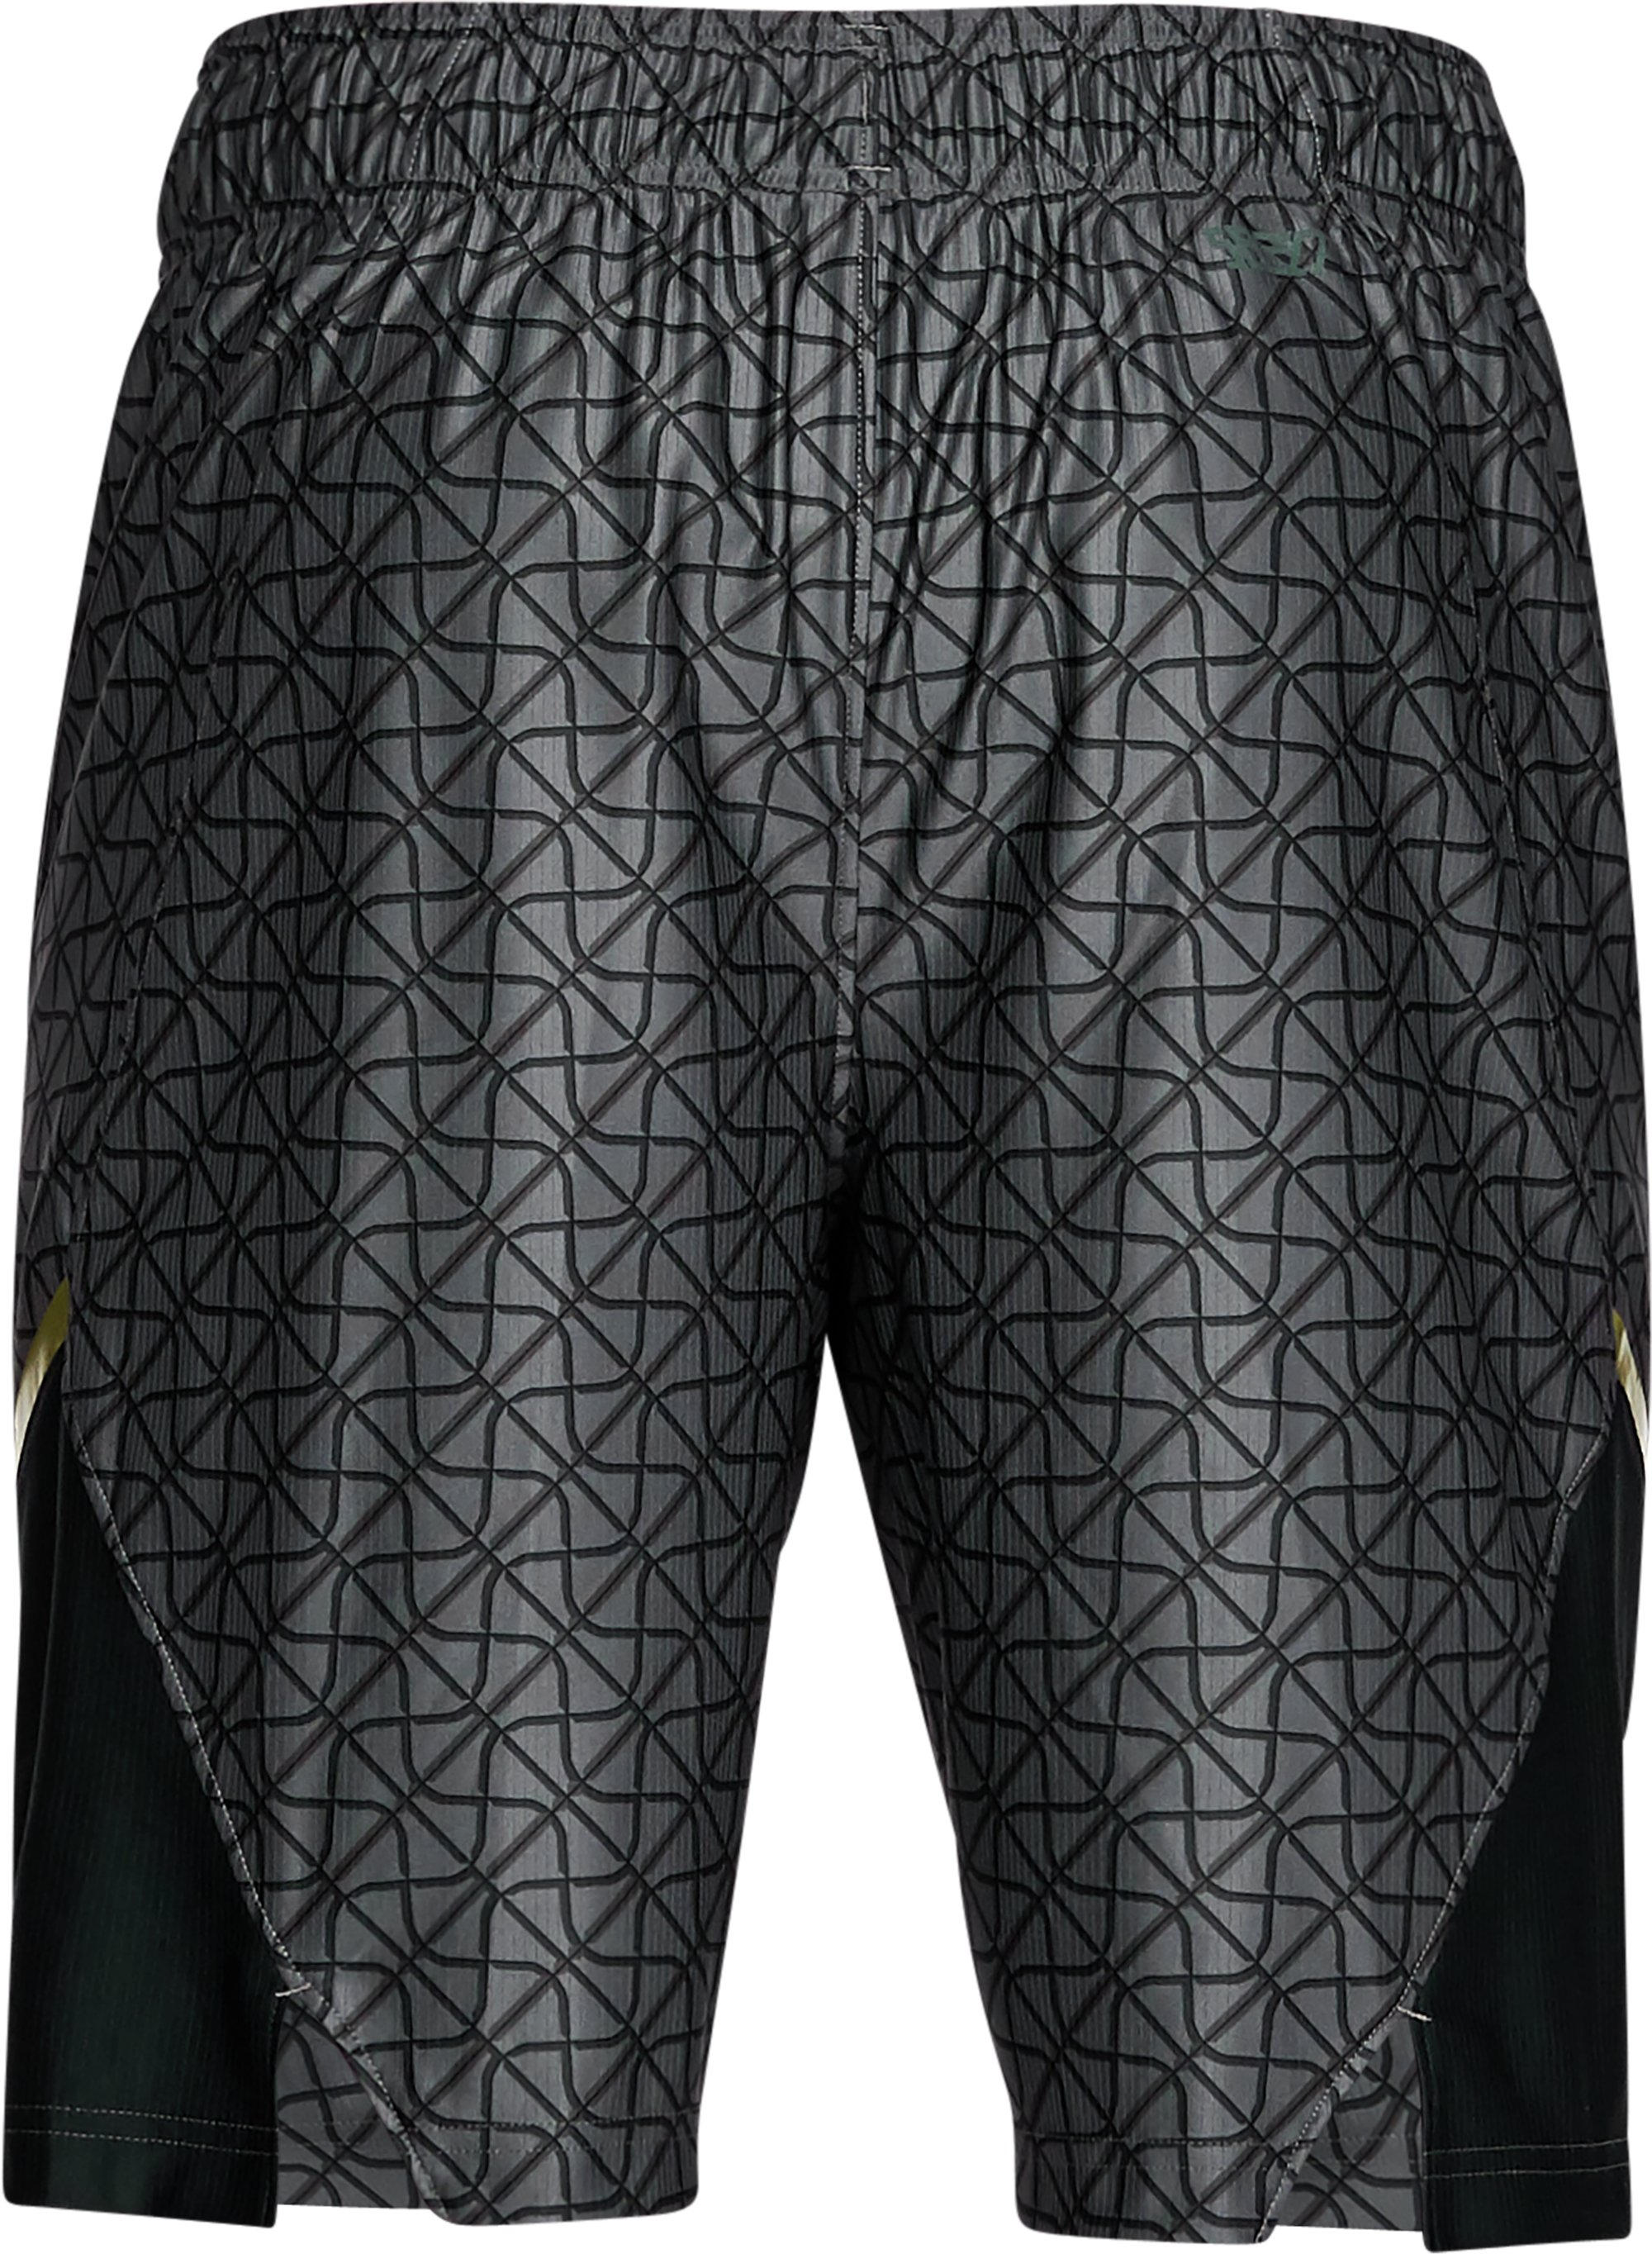 "Men's UA Select Printed 9"" Shorts, Black ,"